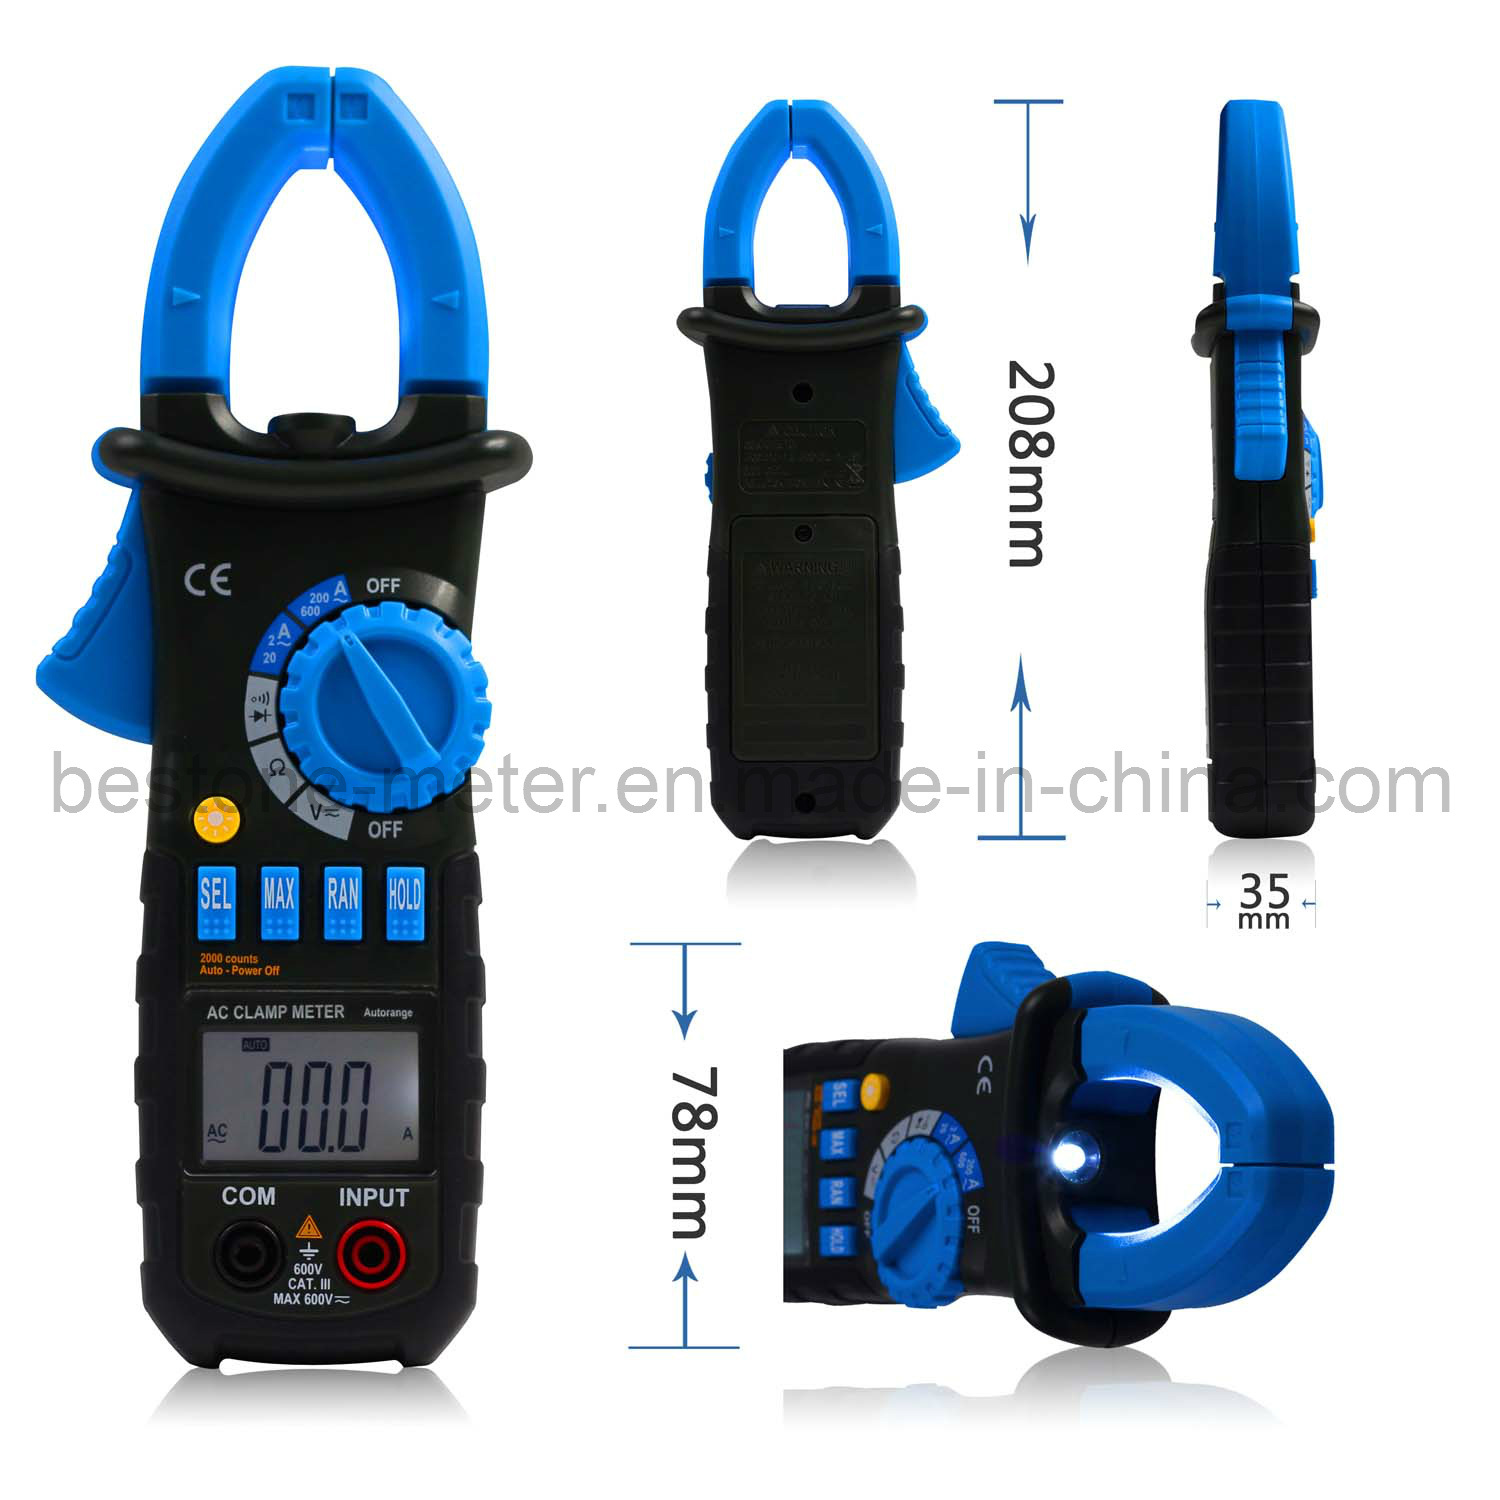 AC Mini Digital Clamp Meter (ACM01)